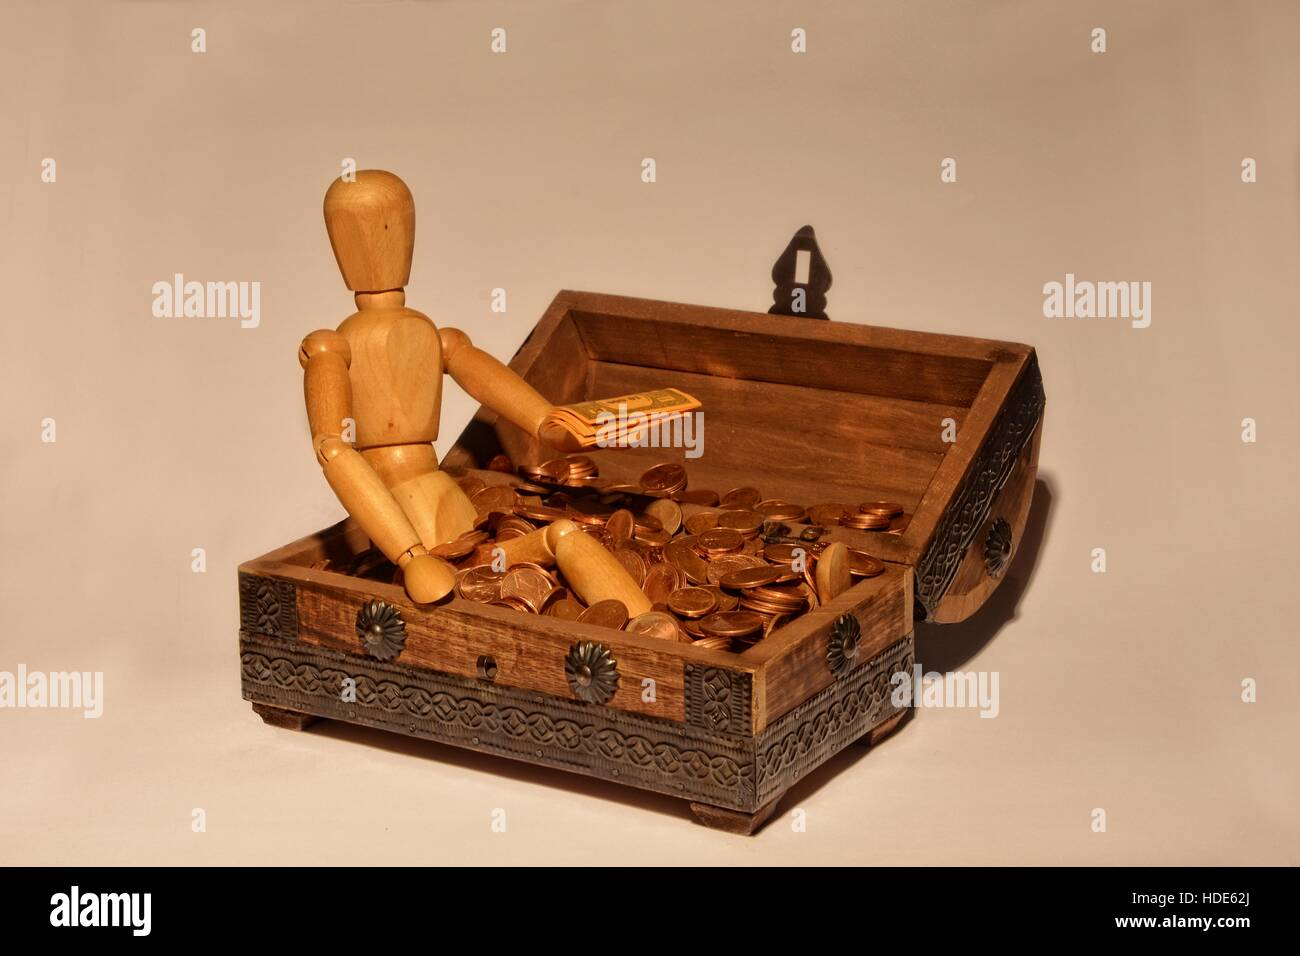 Wooden figure sitting in a wooden box with money, bill on the hand - Stock Image